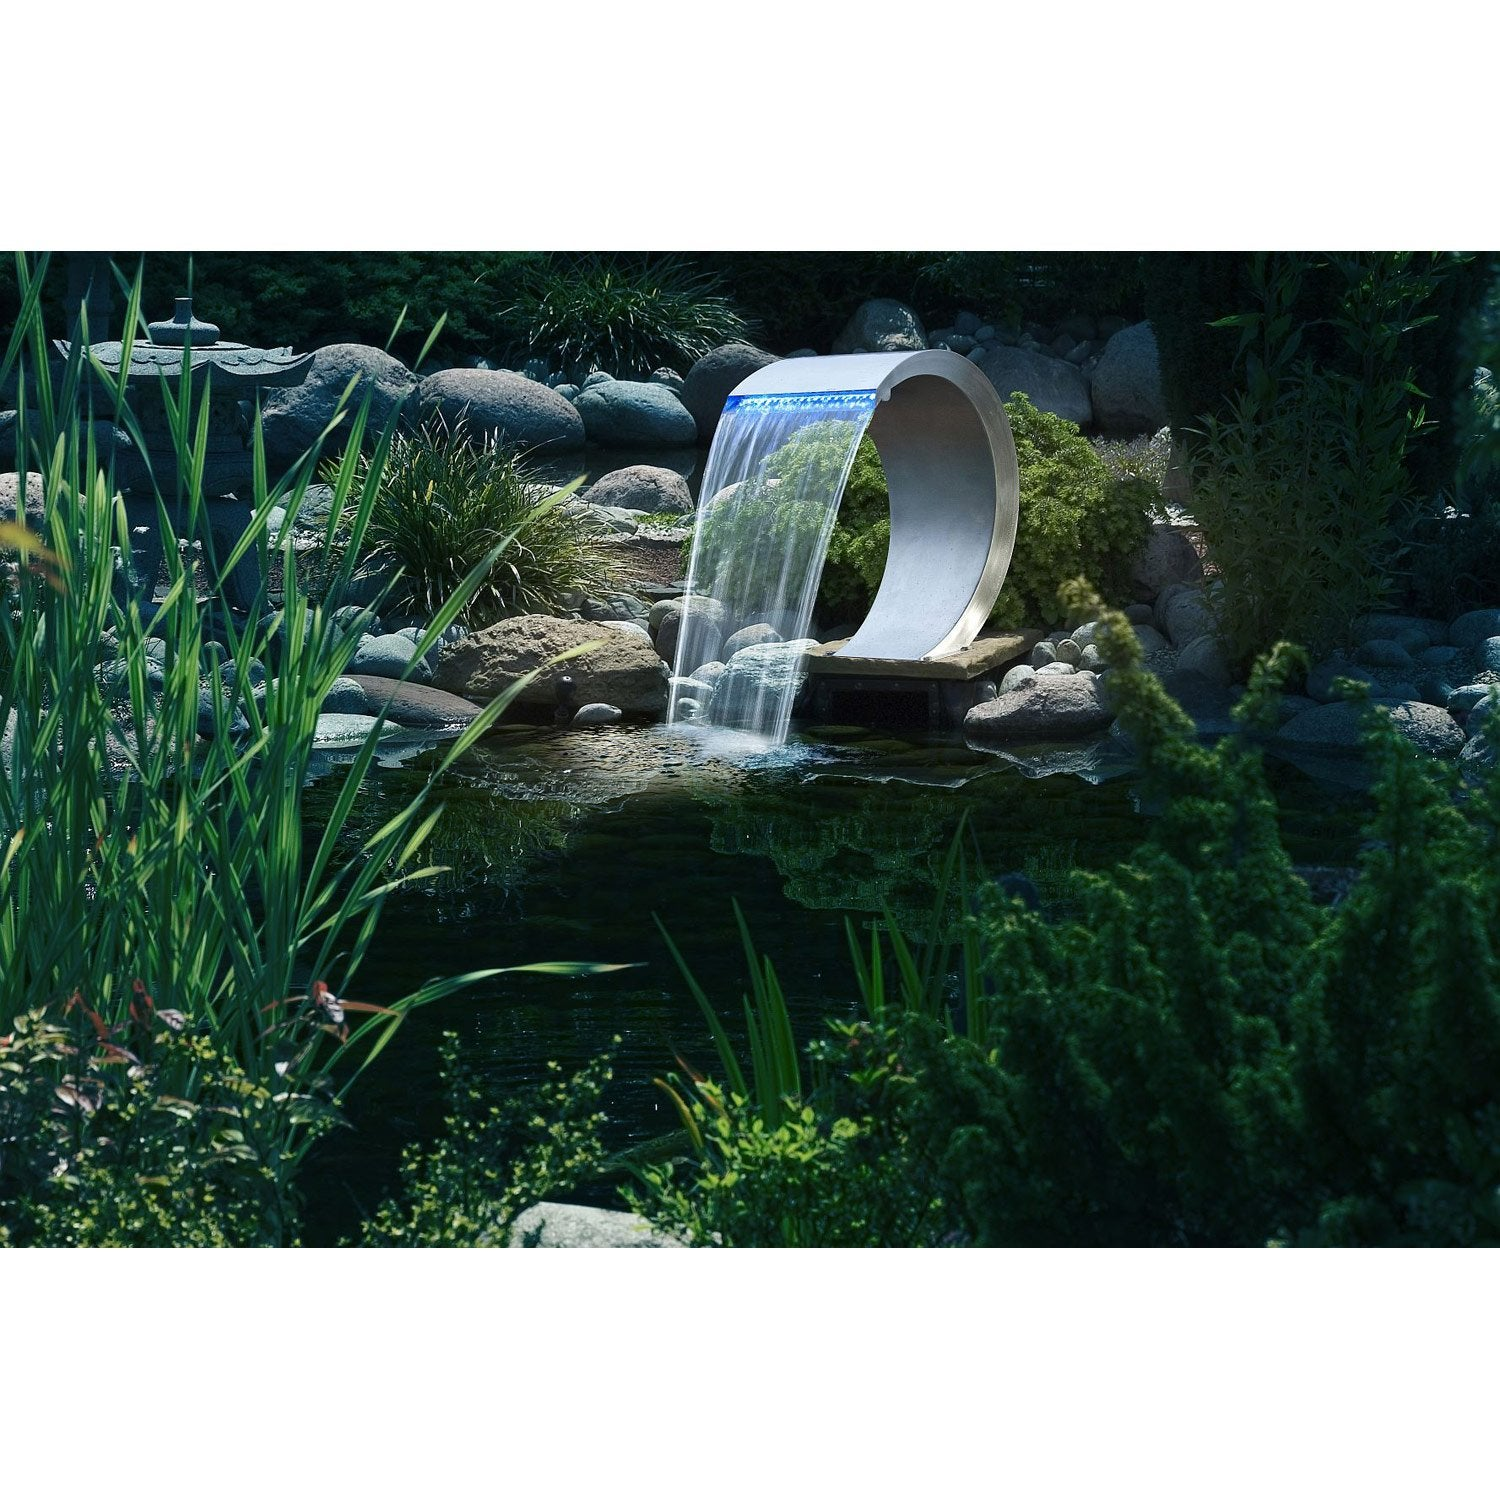 Cascade artificielle exterieur fashion designs for Bache pour bassin de jardin